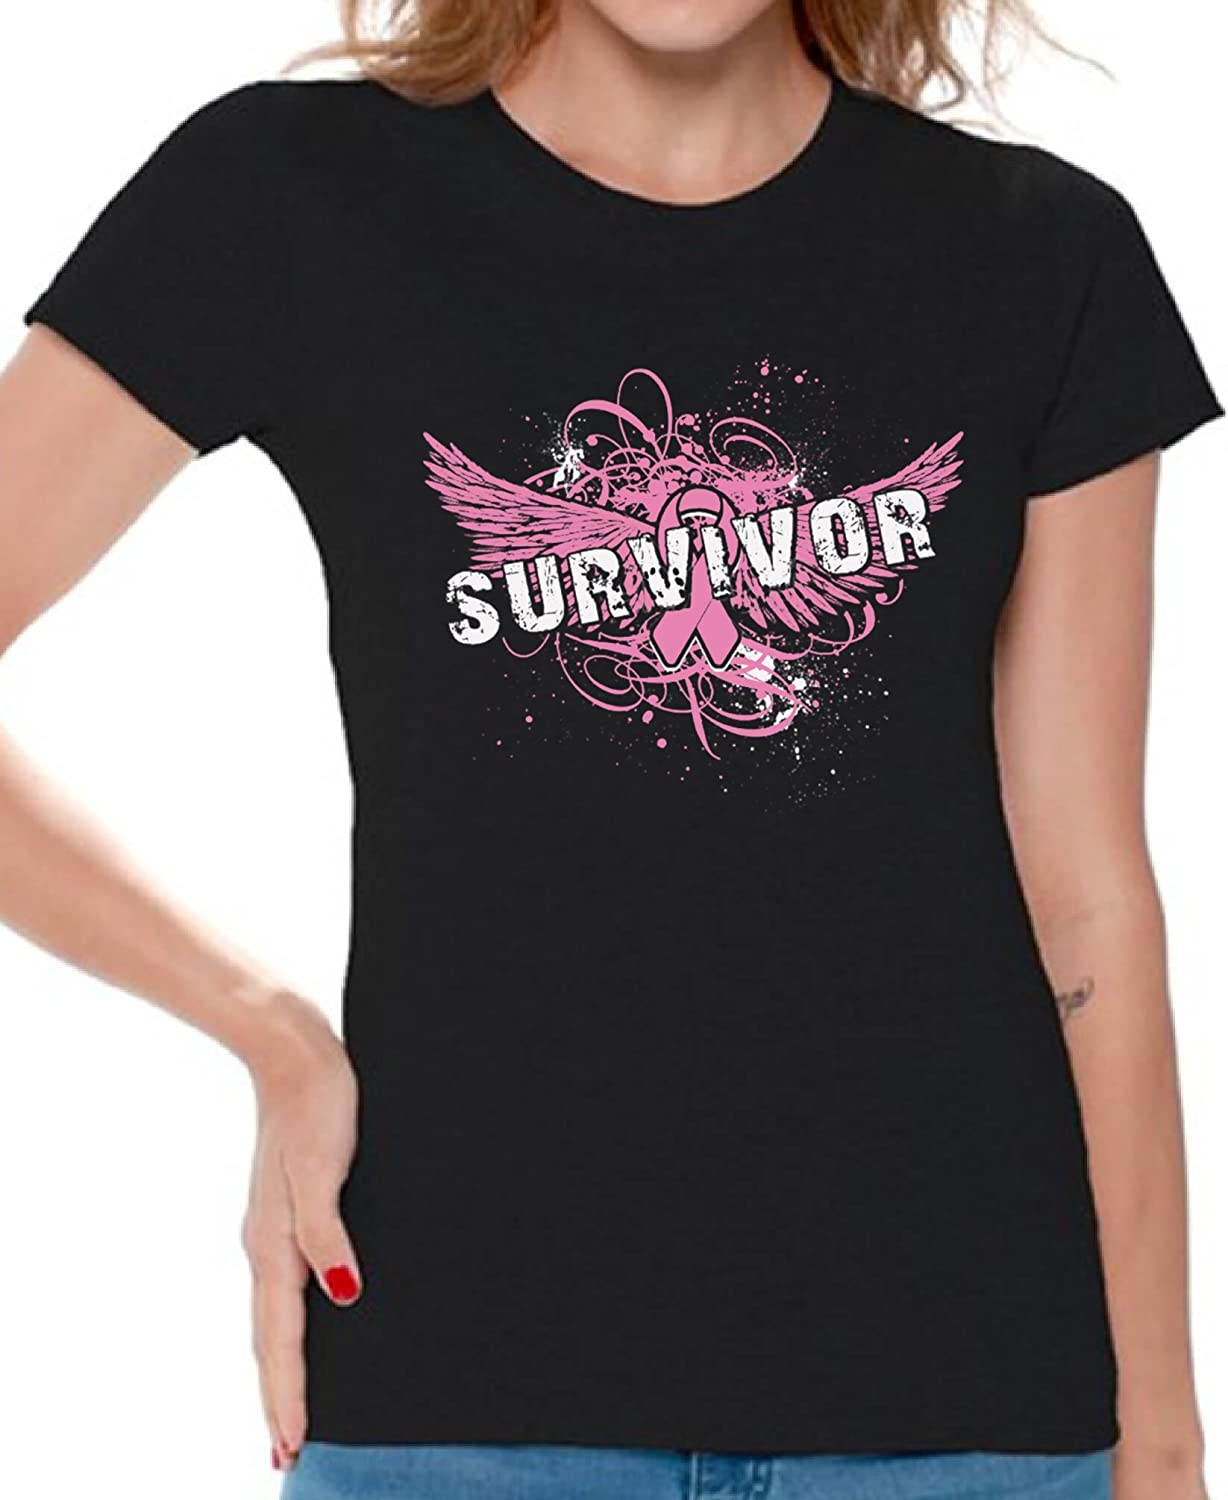 Breast Cancer Awareness Shirt Breast Cancer Ribbon Cancer Awareness Cancer Survivor Shirt Breast Cancer Gift Breast Cancer Shirt